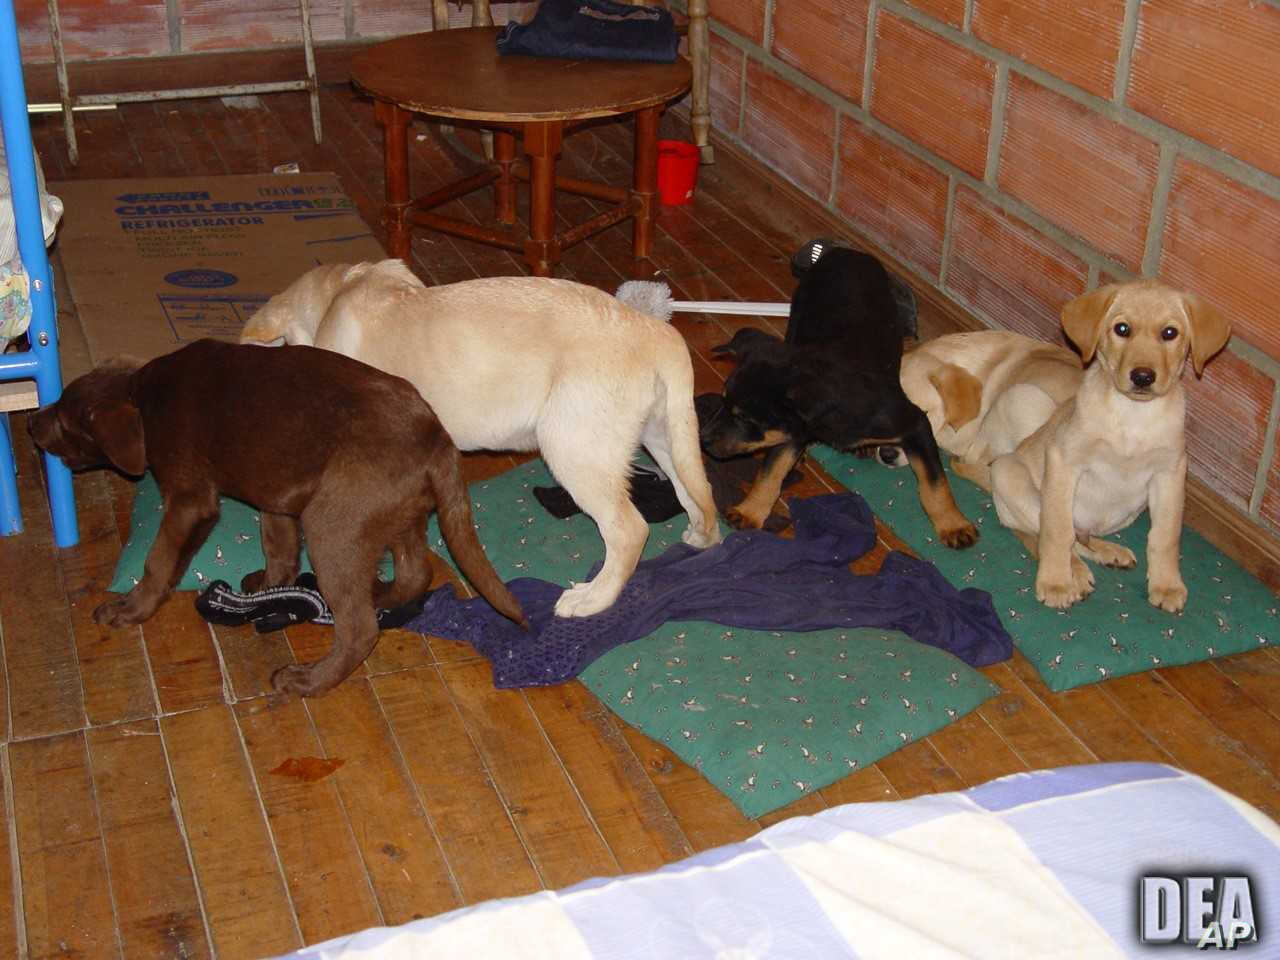 Colombia Vet Who Smuggled Heroin to US in Puppies Sent to